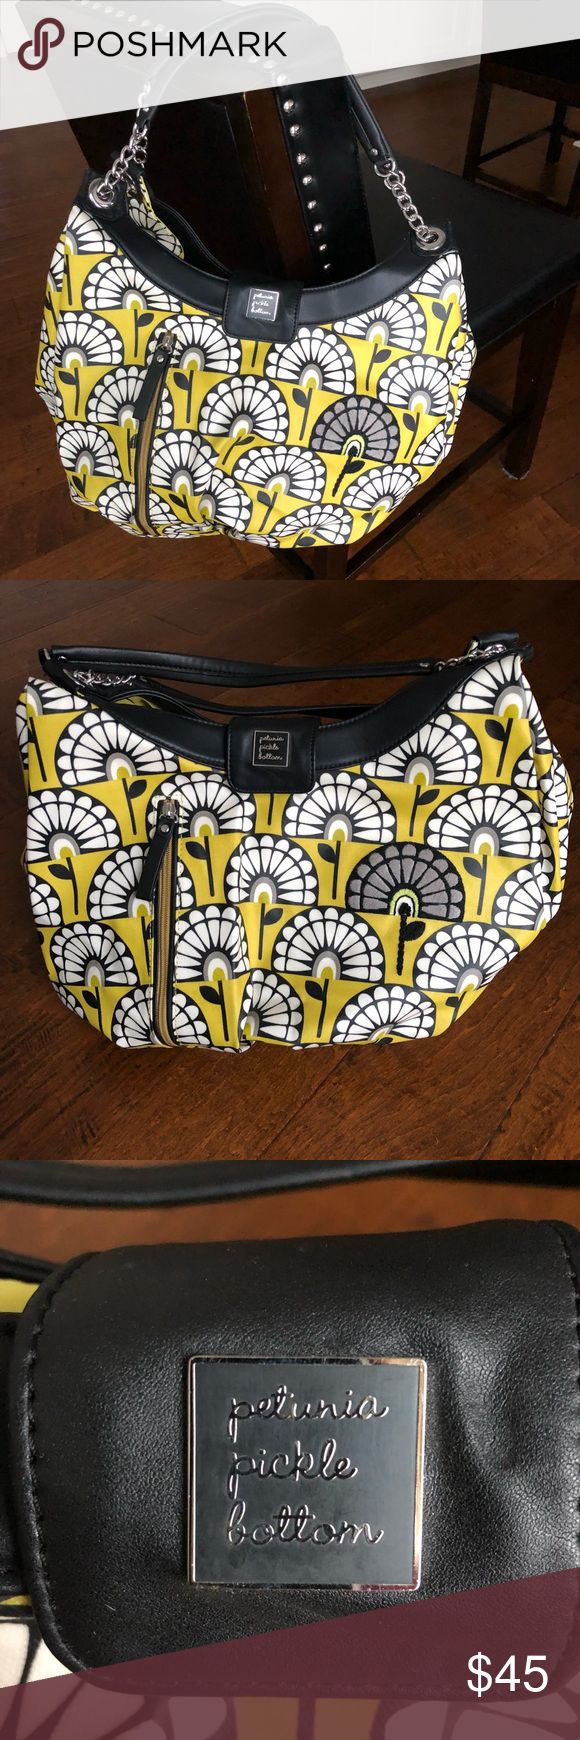 Petunia Pickle Bottom Diaper Bag Petunia Pickle Bottom Hobo style diaper bag! Colors: yellow, black, white, & gray. Used twice, like new! Exterior front has one zipper pocket, interior has 4 slip in pockets, 2 bottle pockets, and diaper changing pad. Snap closure in front. Exterior material can easily be wiped clean. Super cute! Petunia Pickle Bottom Bags Baby Bags